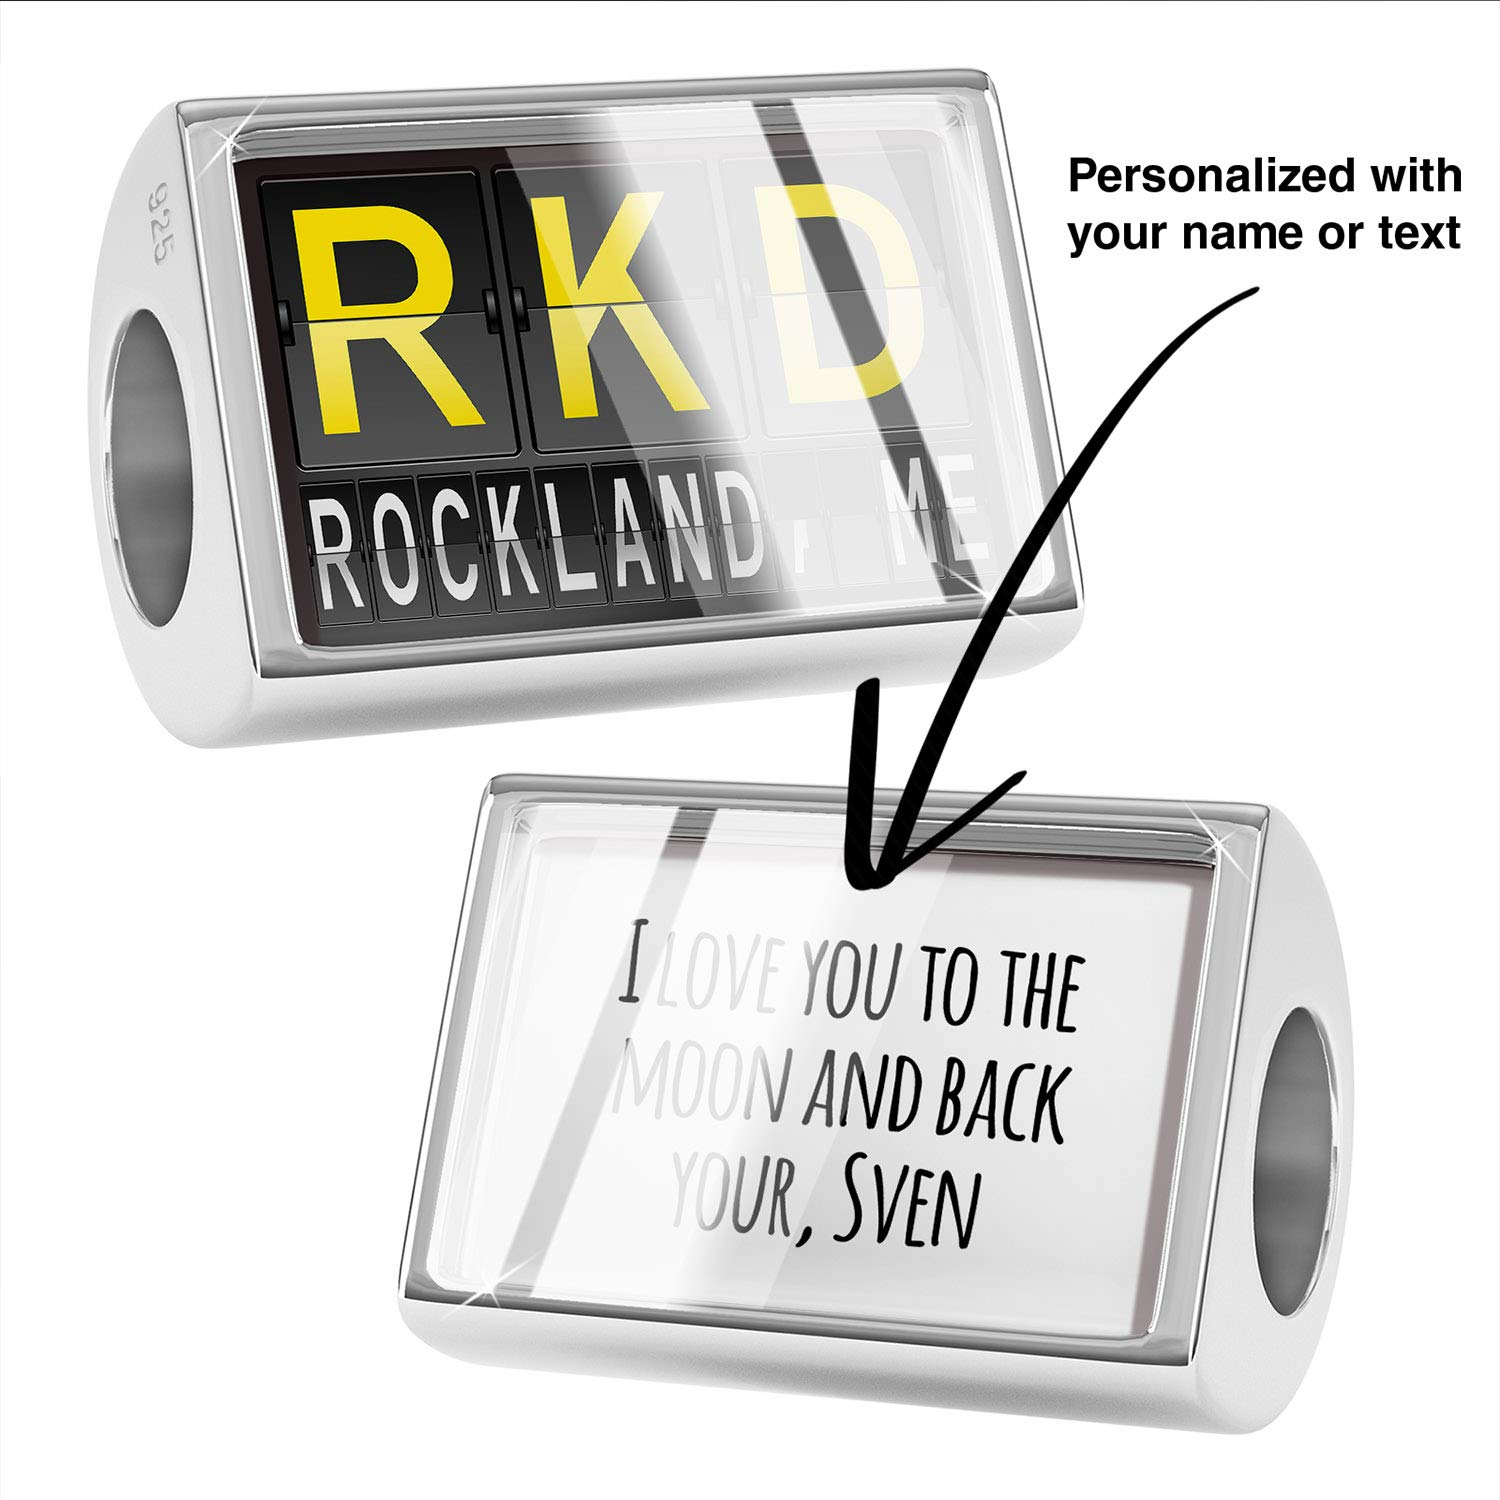 NEONBLOND Custom Charm RKD Airport Code for Rockland ME 925 Sterling Silver Bead